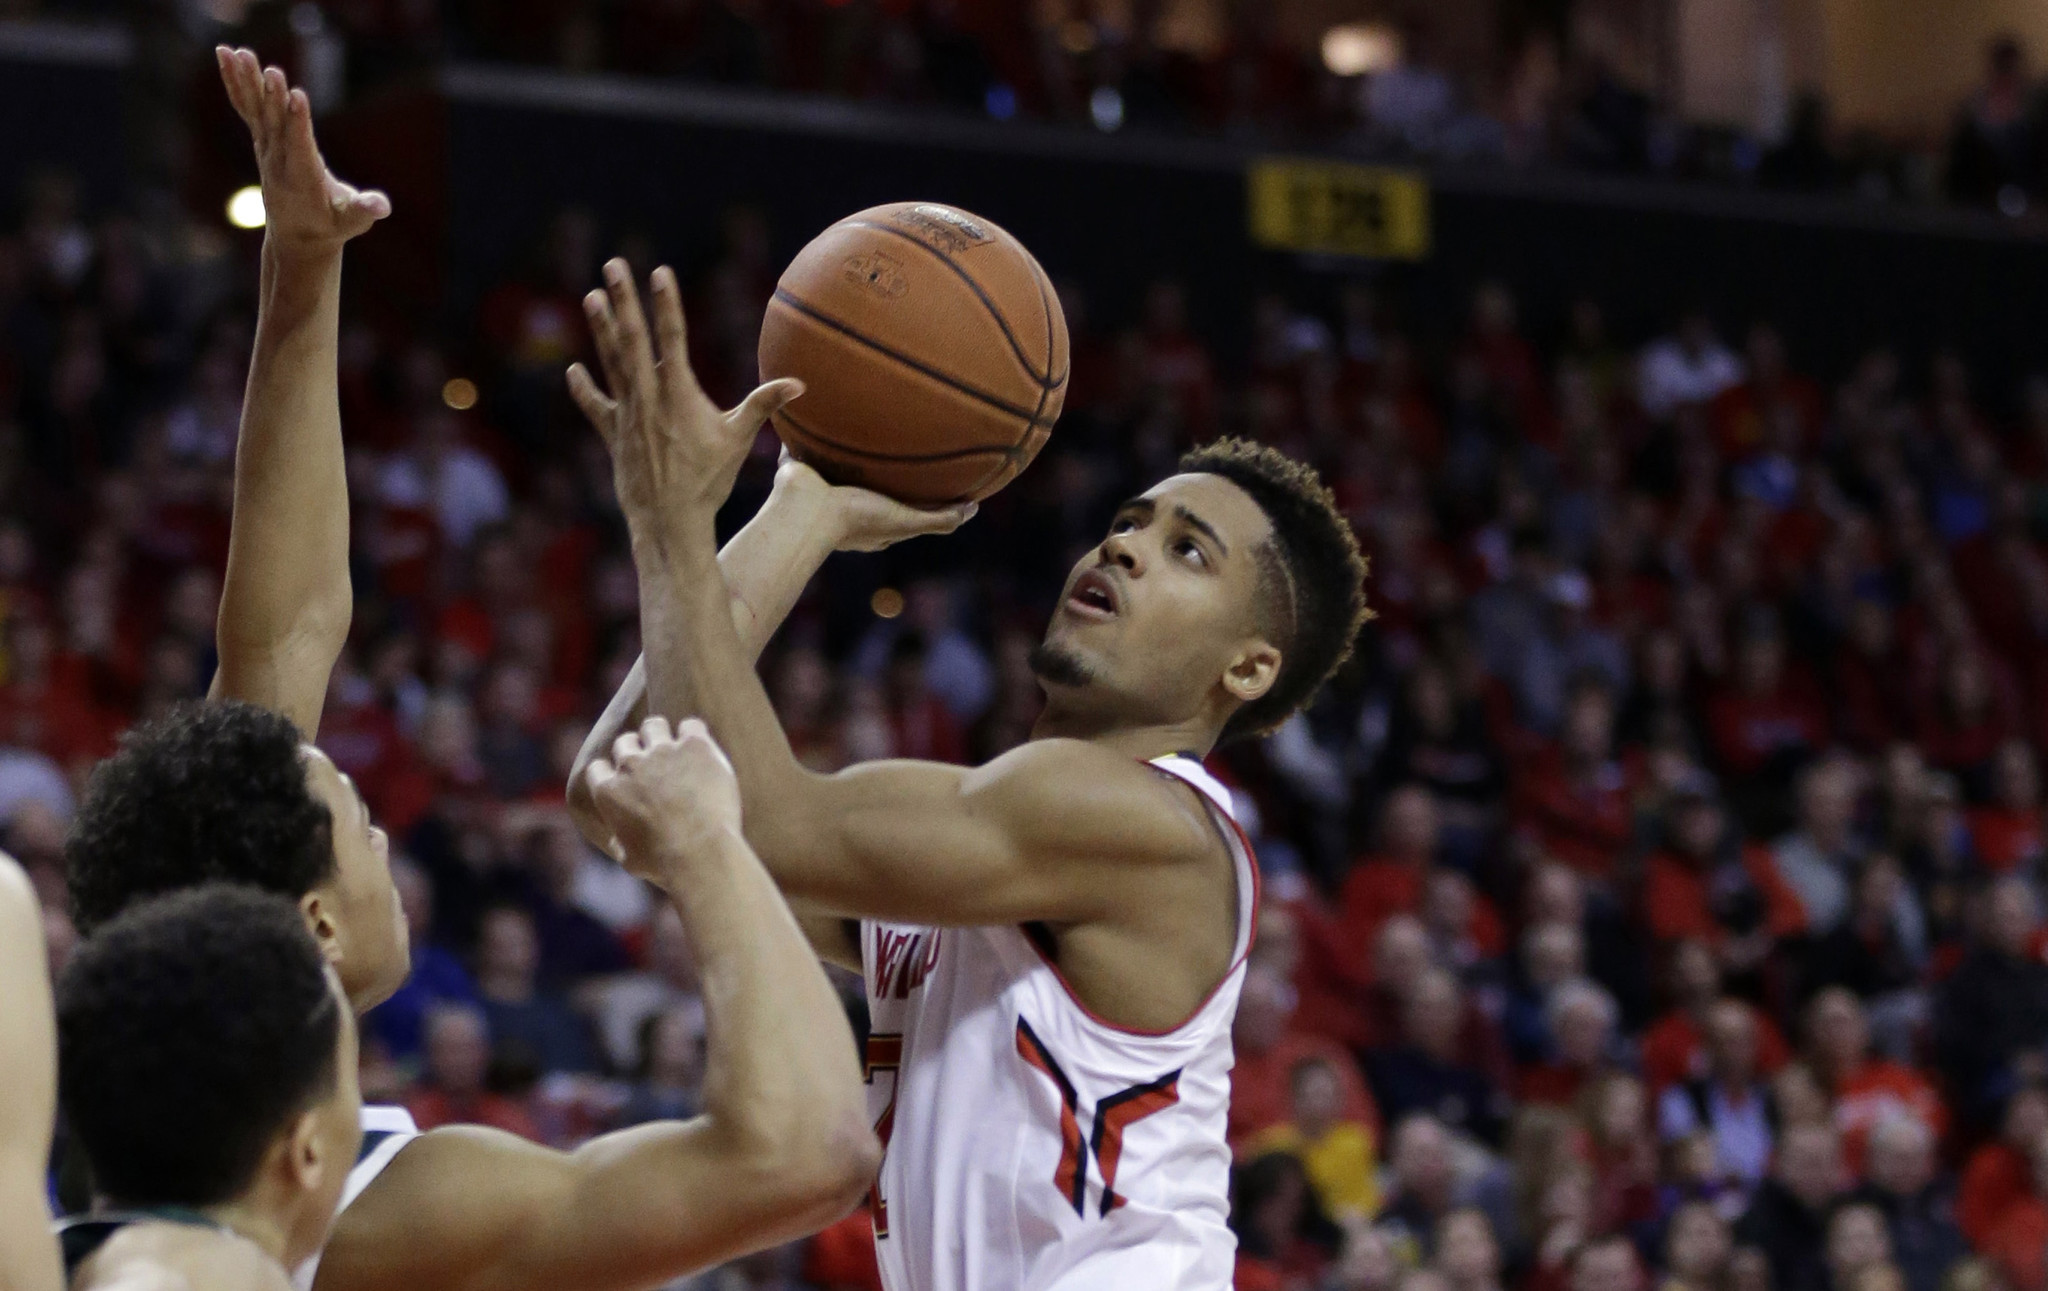 Bal-maryland-men-s-basketball-ranked-21st-in-usa-today-preseason-coaches-poll-20161020